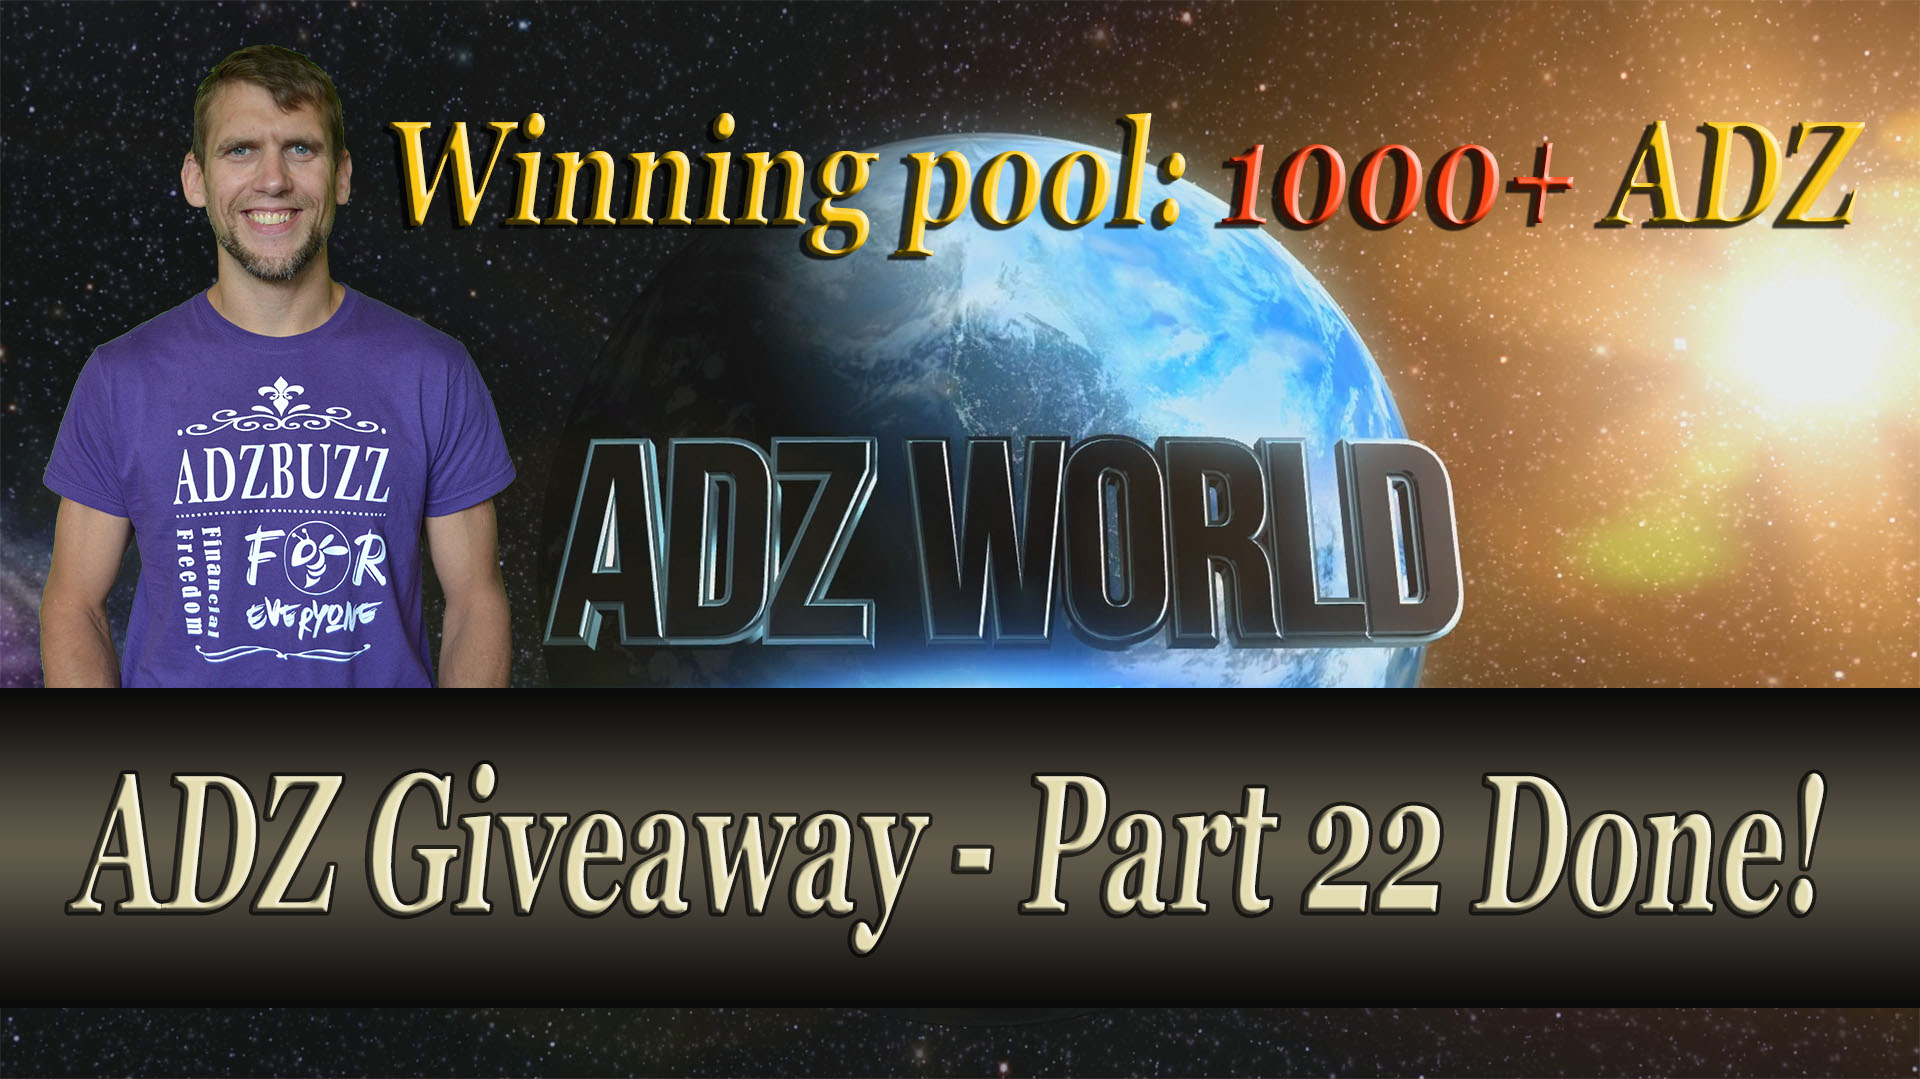 ADZ Giveaway 22 (19.08.2018) Done!